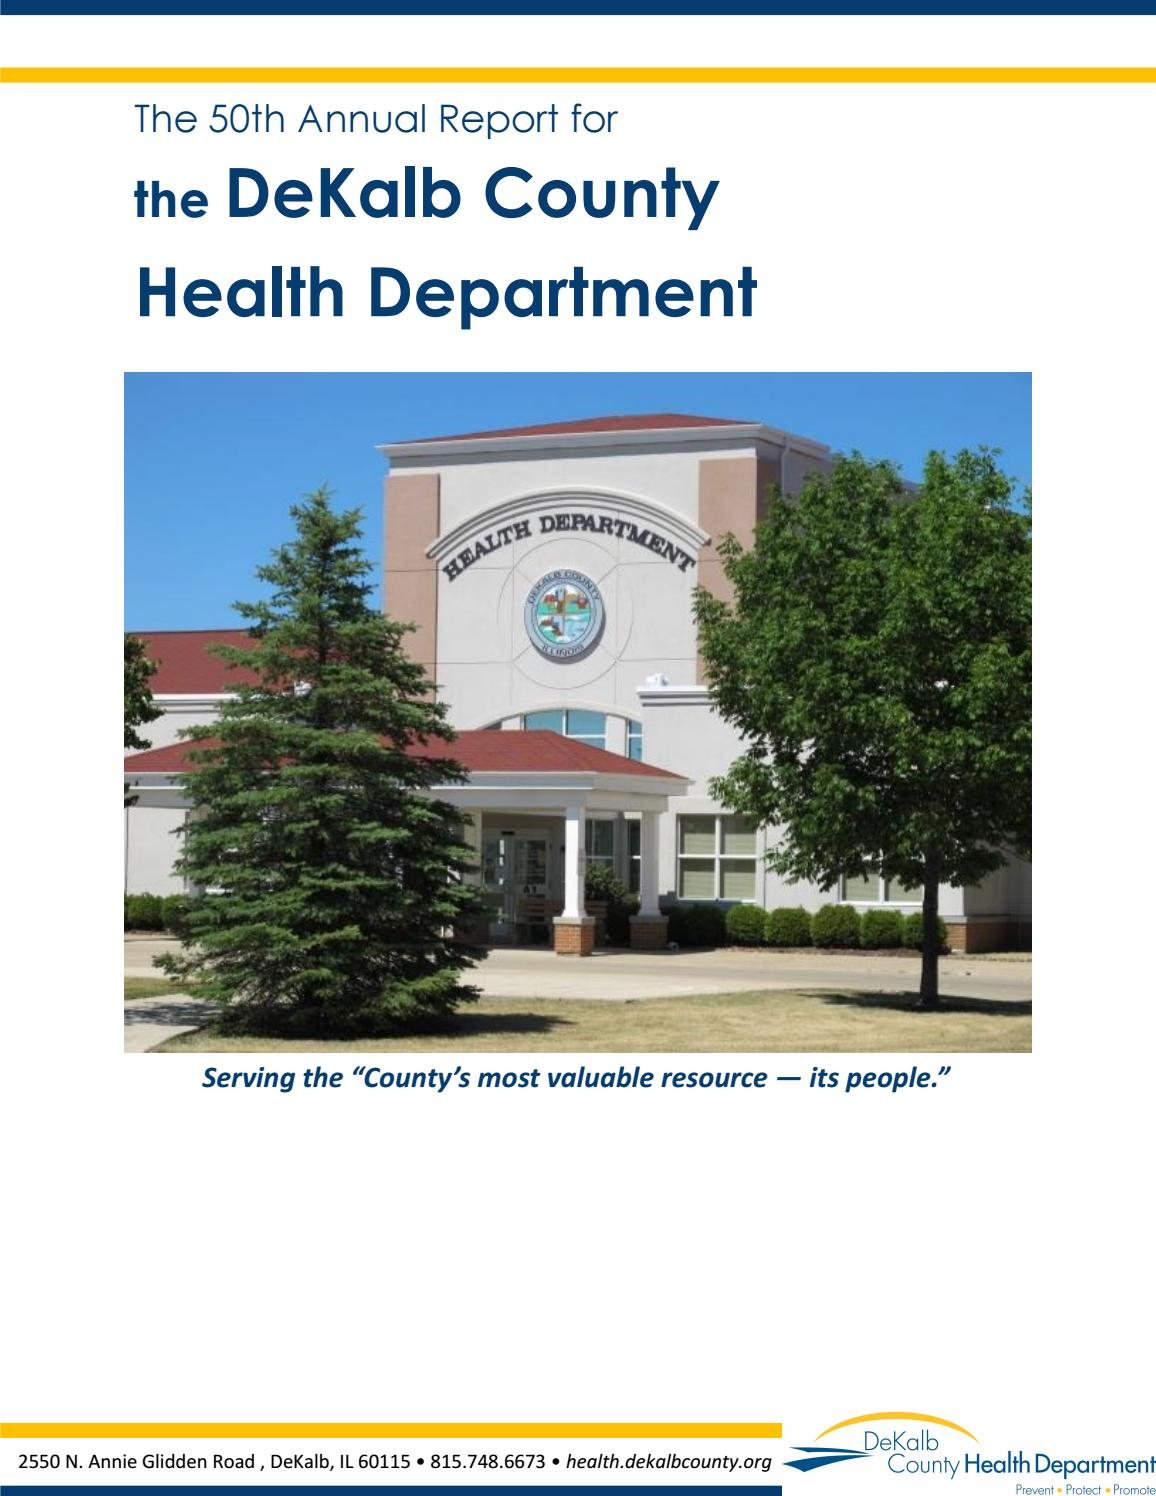 The 50th Annual Report for the DeKalb County Health Department by DeKalb  County Health Department - issuu